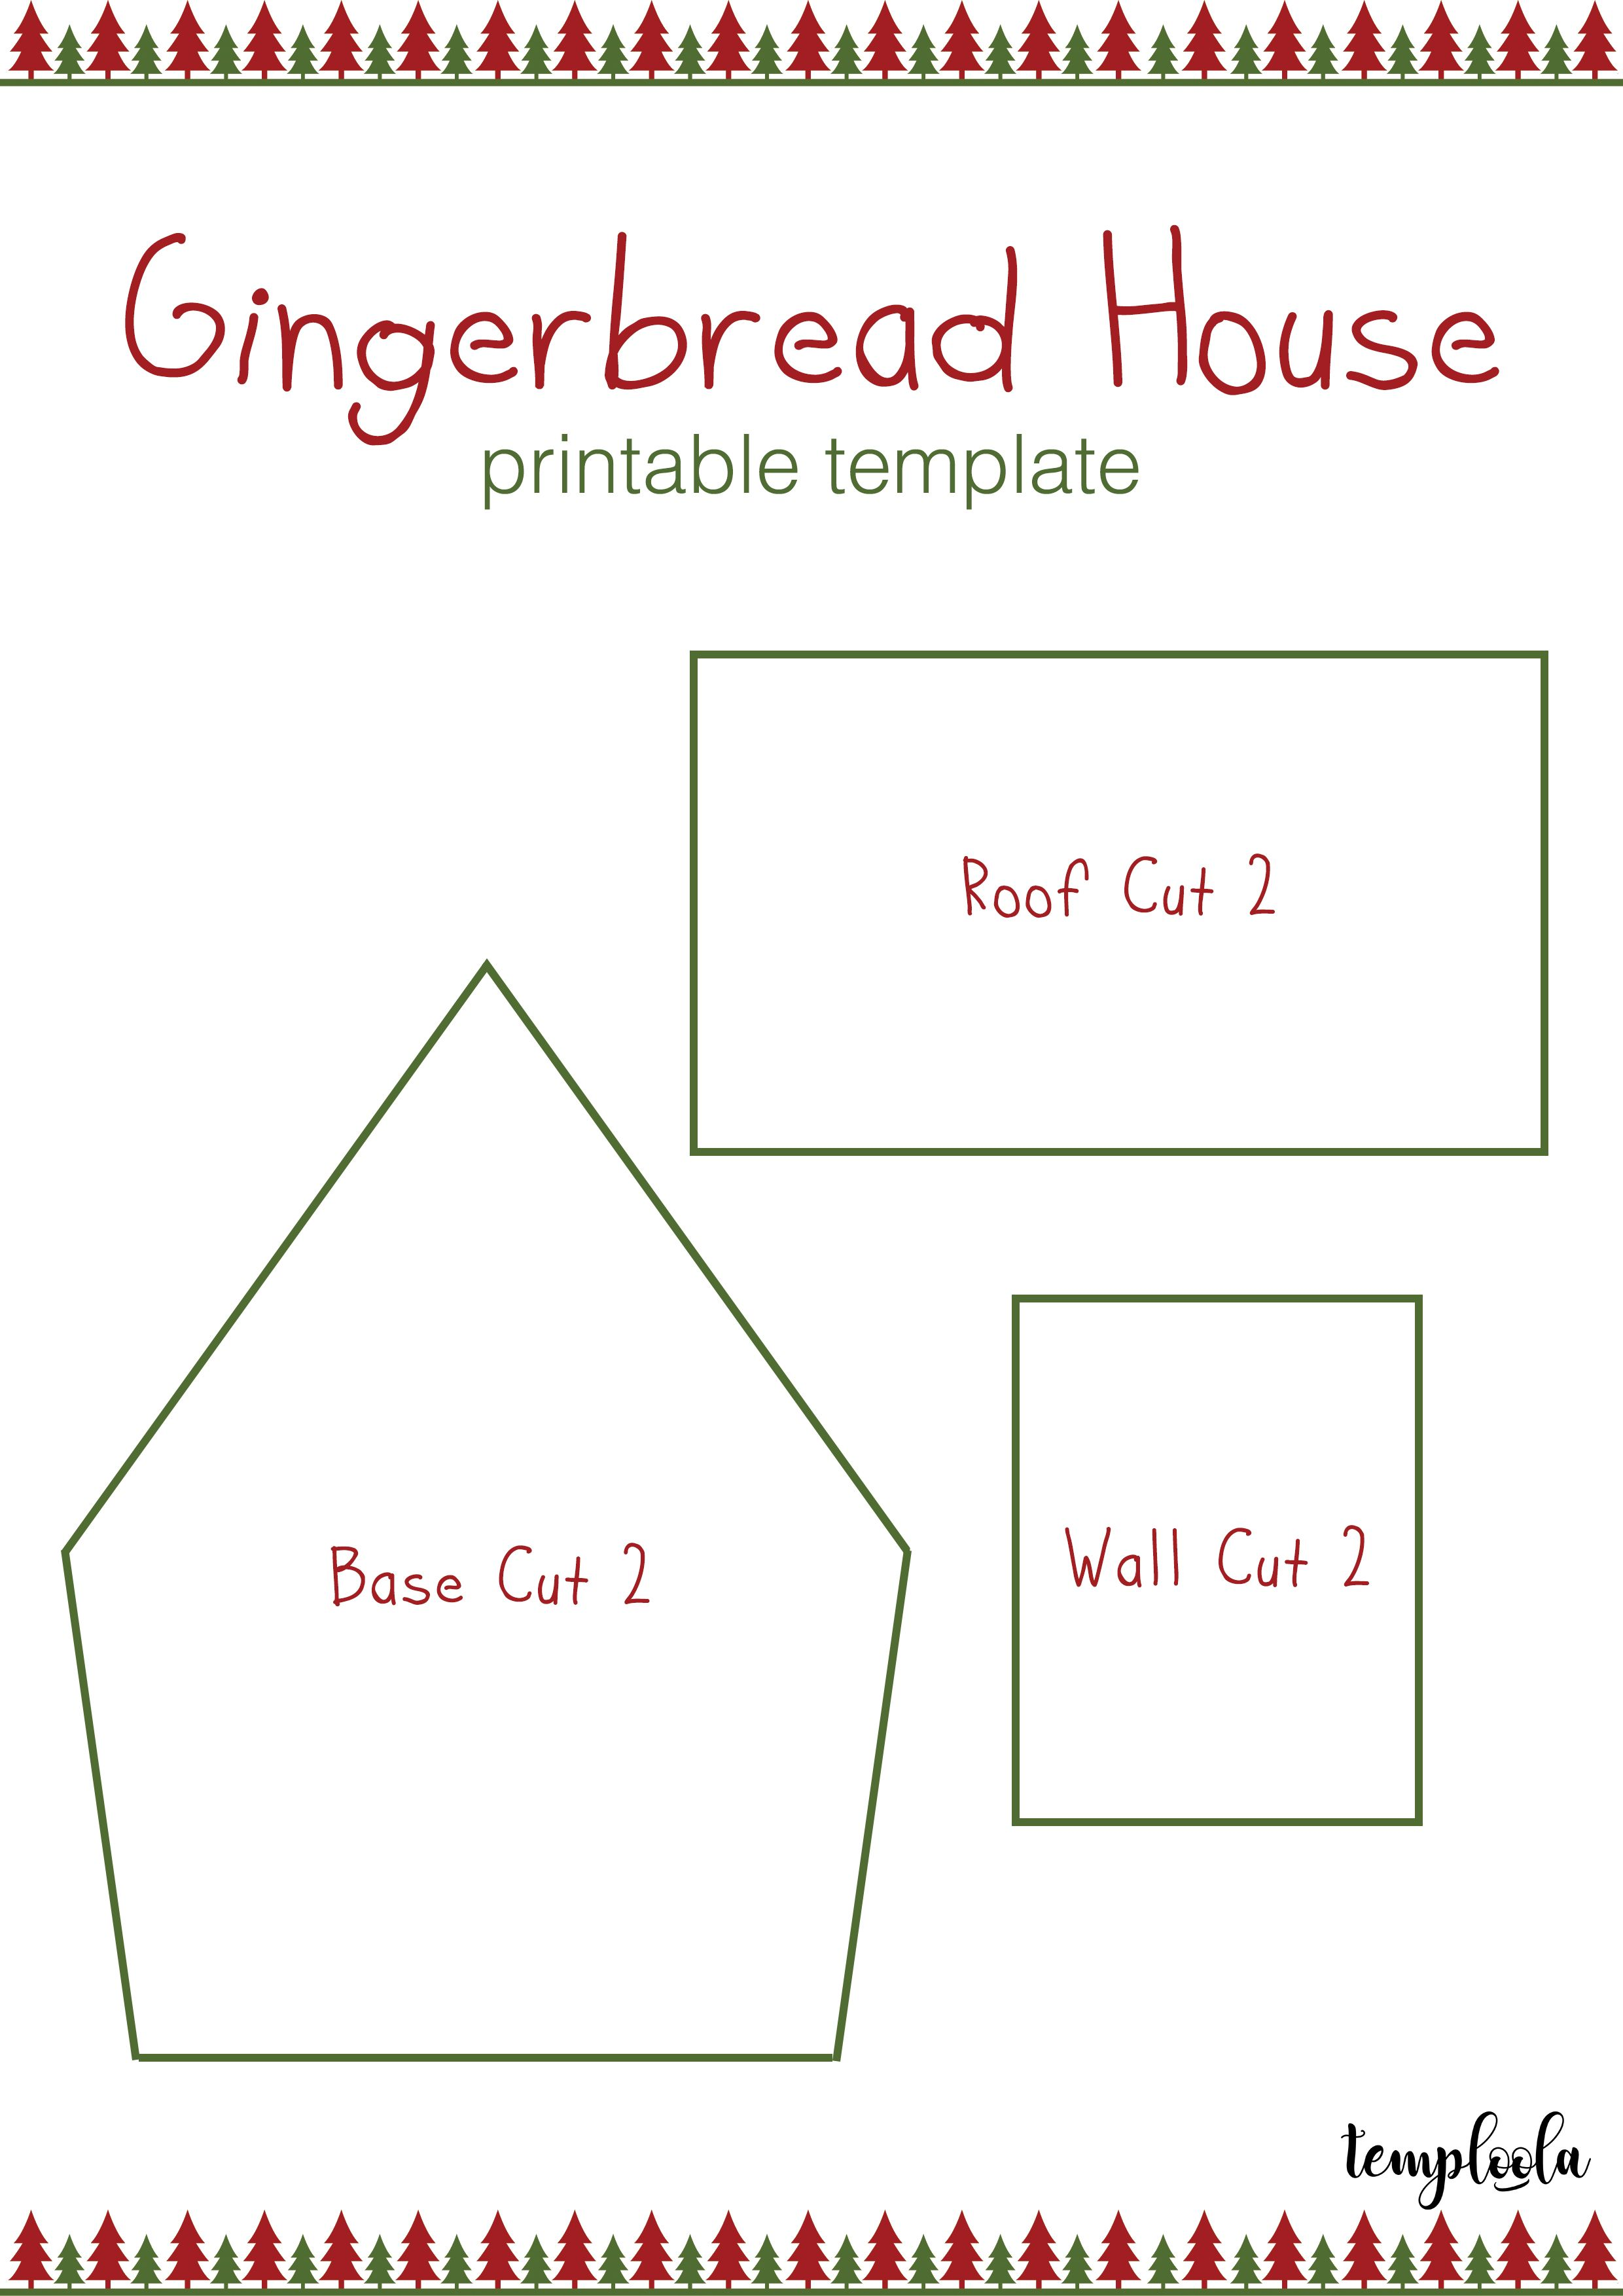 Gingerbread house template christmastrees red and green